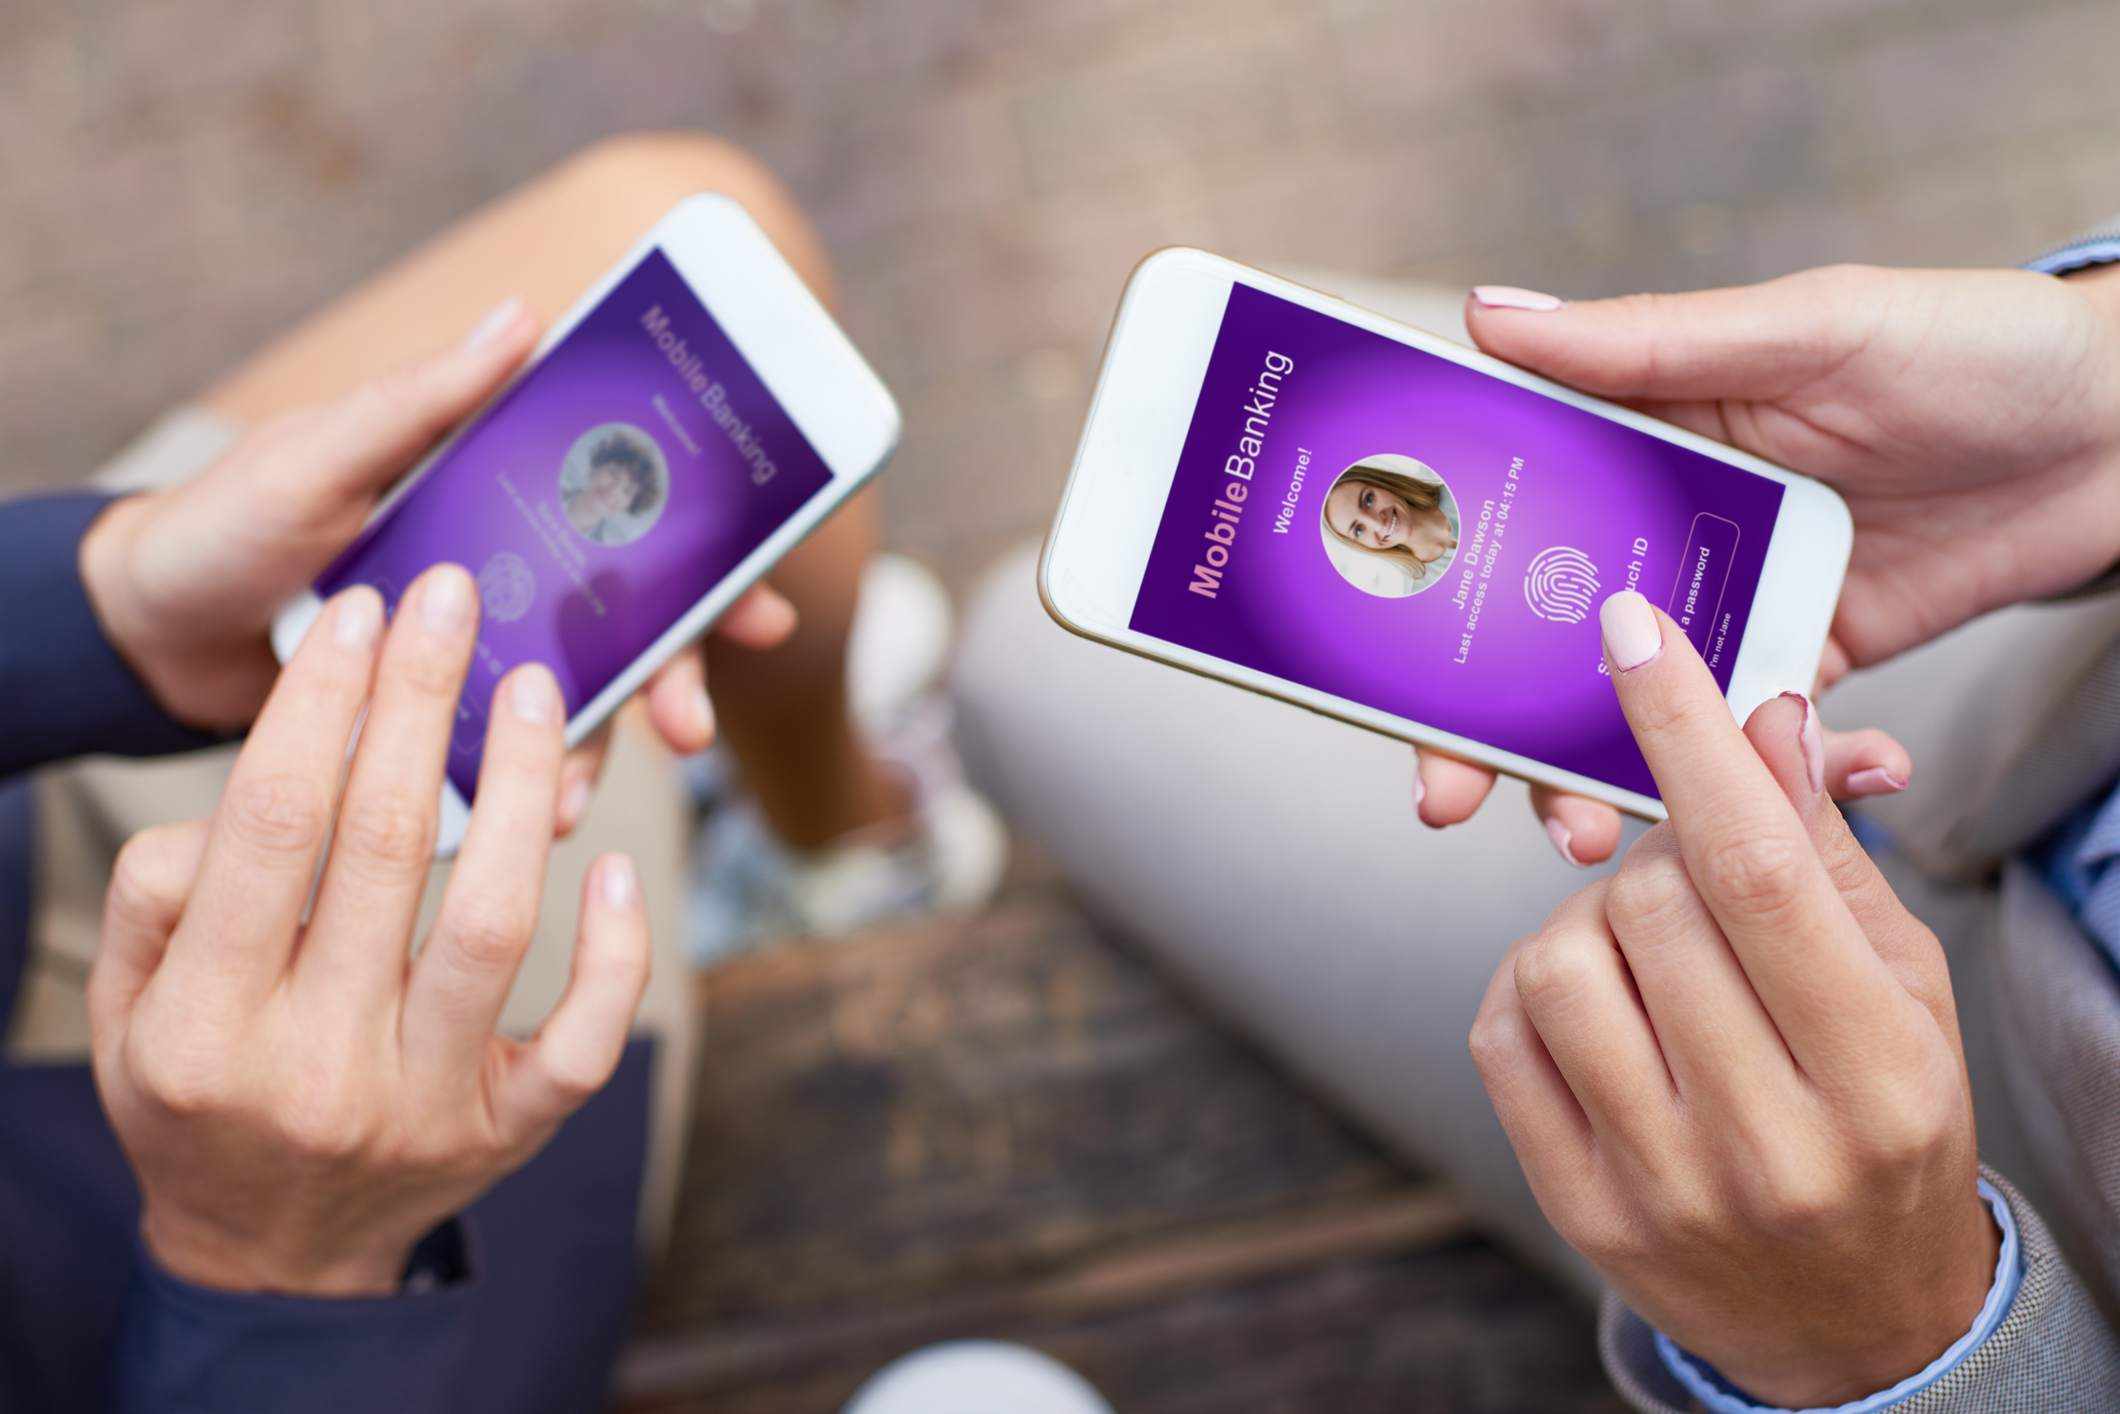 A close up of hands holding smartphones using biometric access for mobile banking apps